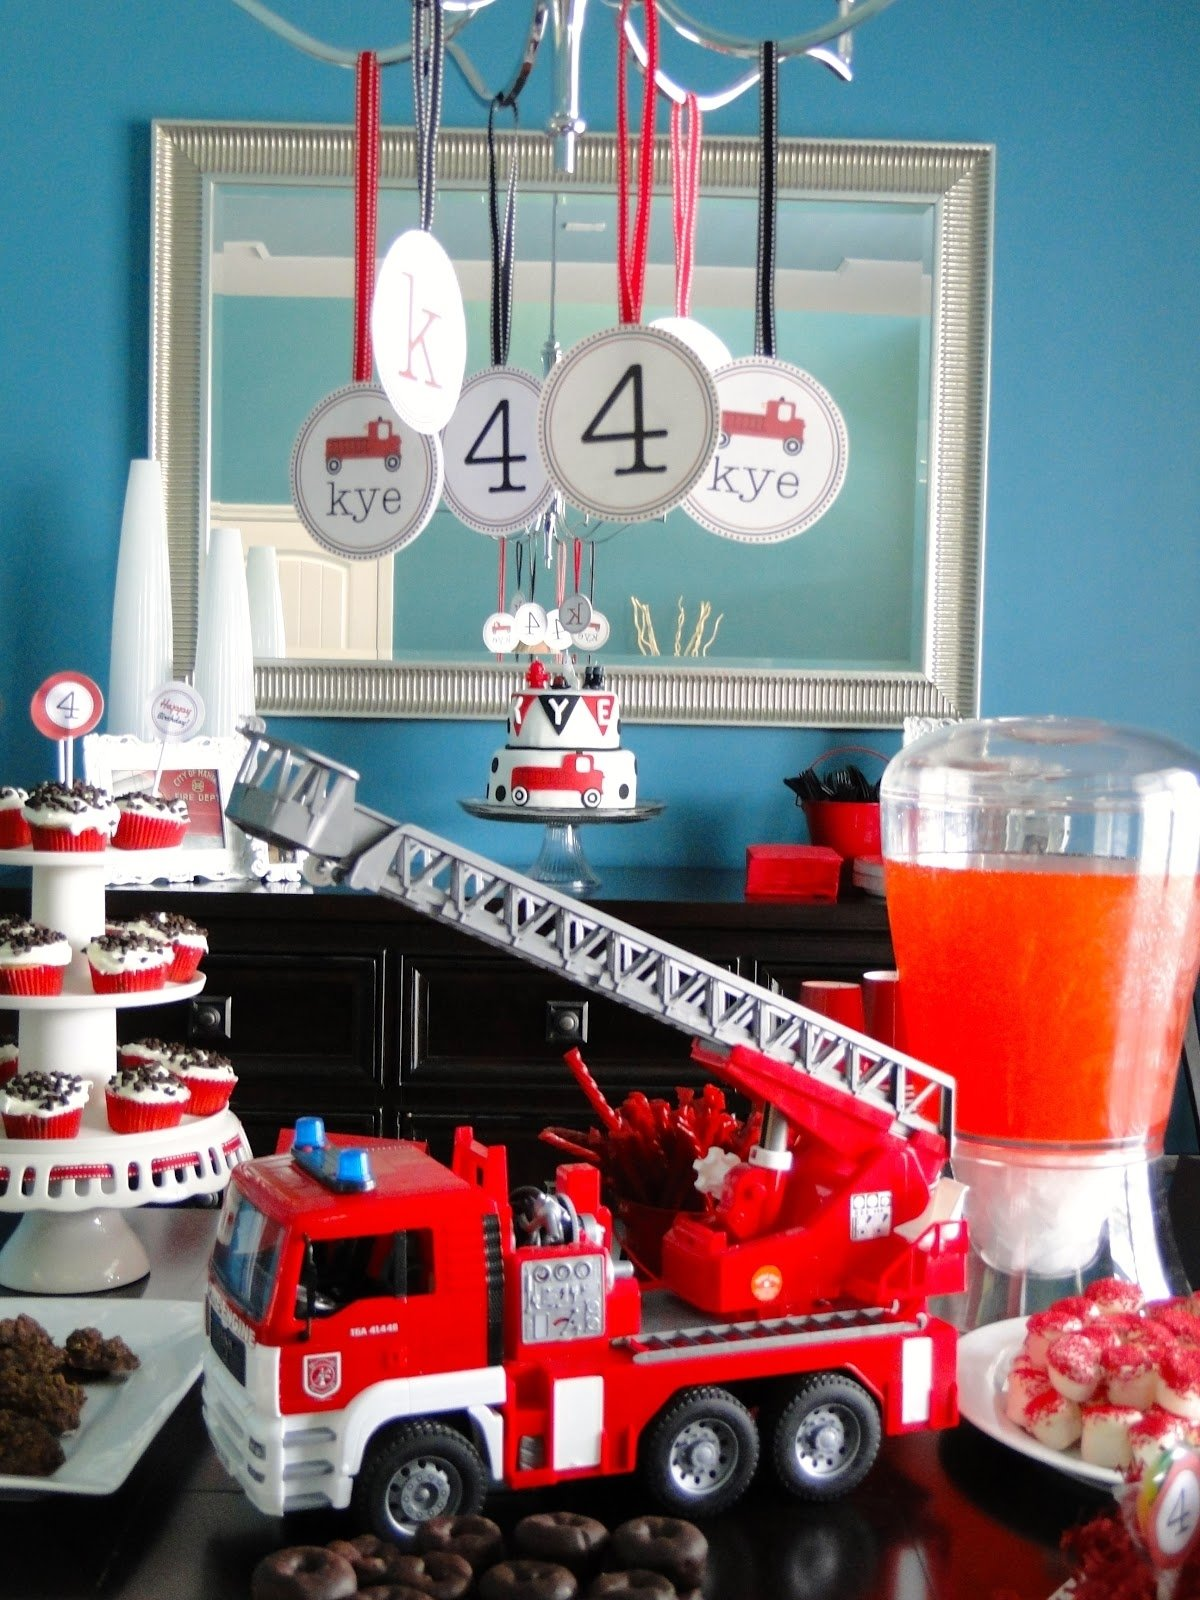 10 Awesome Fire Truck Birthday Party Ideas the journey of parenthood firetruck party decorations 2020